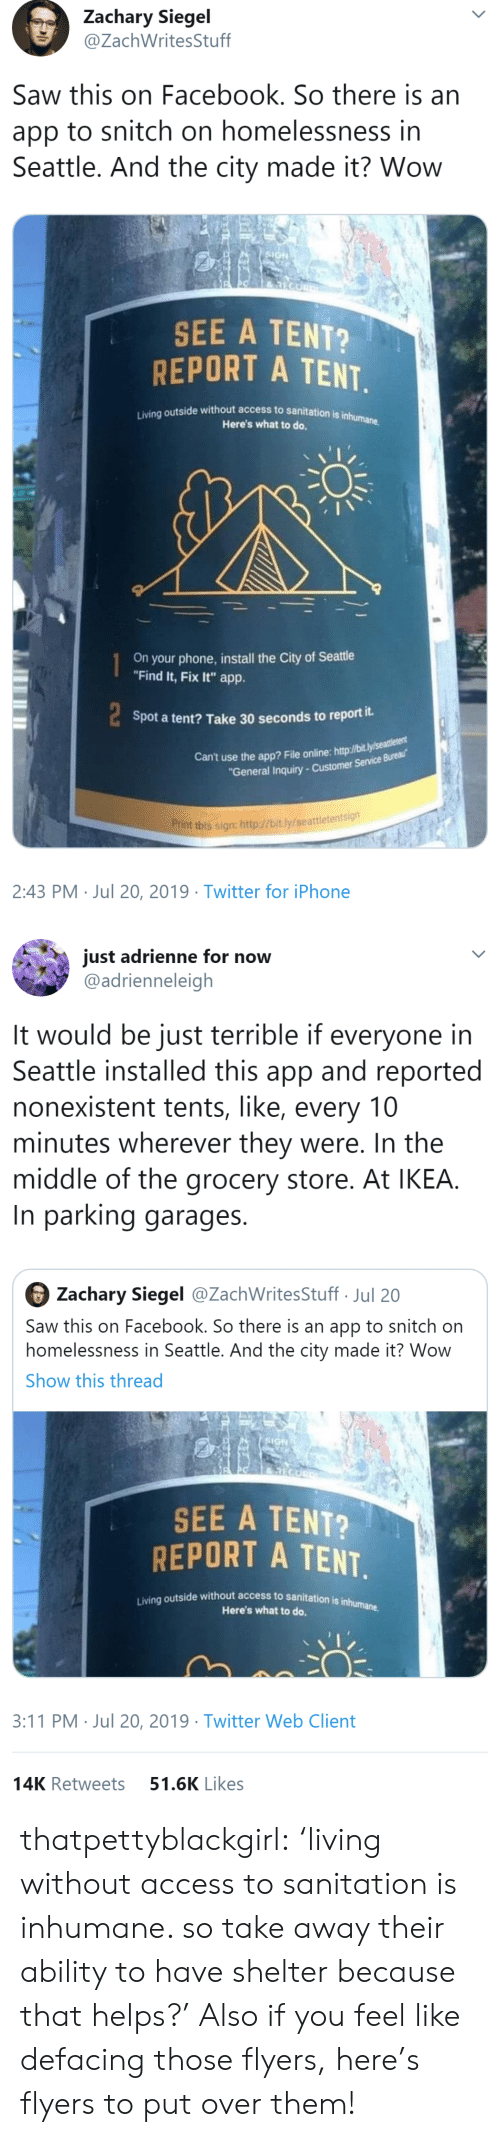 """tent: Zachary Siegel  @ZachWritesStuff  Saw this on Facebook. So there is an  app to snitch on homelessness in  Seattle. And the city made it? Wow  SIGN  SEE A TENT?  REPORT A TENT  Living outside without access to sanitation is inhumane.  Here's what to do.  On your phone,install the City of Seattle  """"Find It, Fix It"""" app.  Spot a tent? Take 30 seconds to report it.  Can't use the app? File online: http://bit.ly/seaeu  """"General Inquiry-Customer Service Bureau  Print this sign: http://bit.ly/seattletentsign  2:43 PM Jul 20, 2019 Twitter for iPhone   just adrienne for now  @adrienneleigh  It would be just terrible if everyone in  Seattle installed this app and reported  nonexistent tents, like, every 10  minutes wherever they were. In the  middle of the grocery store. At IKEA.  In parking garages  Zachary Siegel @ZachWritesStuff Jul 20  Saw this on Facebook. So there is an app to snitch on  homelessness in Seattle. And the city made it? Wow  Show this thread  SIGN  SEE A TENT?  REPORT A TENT.  Living outside without access to sanitation is inhumane  Here's what to do.  3:11 PM Jul 20, 2019 Twitter Web Client  51.6K Likes  14K Retweets thatpettyblackgirl:    'living without access to sanitation is inhumane. so take away their ability to have shelter because that helps?'     Also if you feel like defacing those flyers, here's flyers to put over them!"""